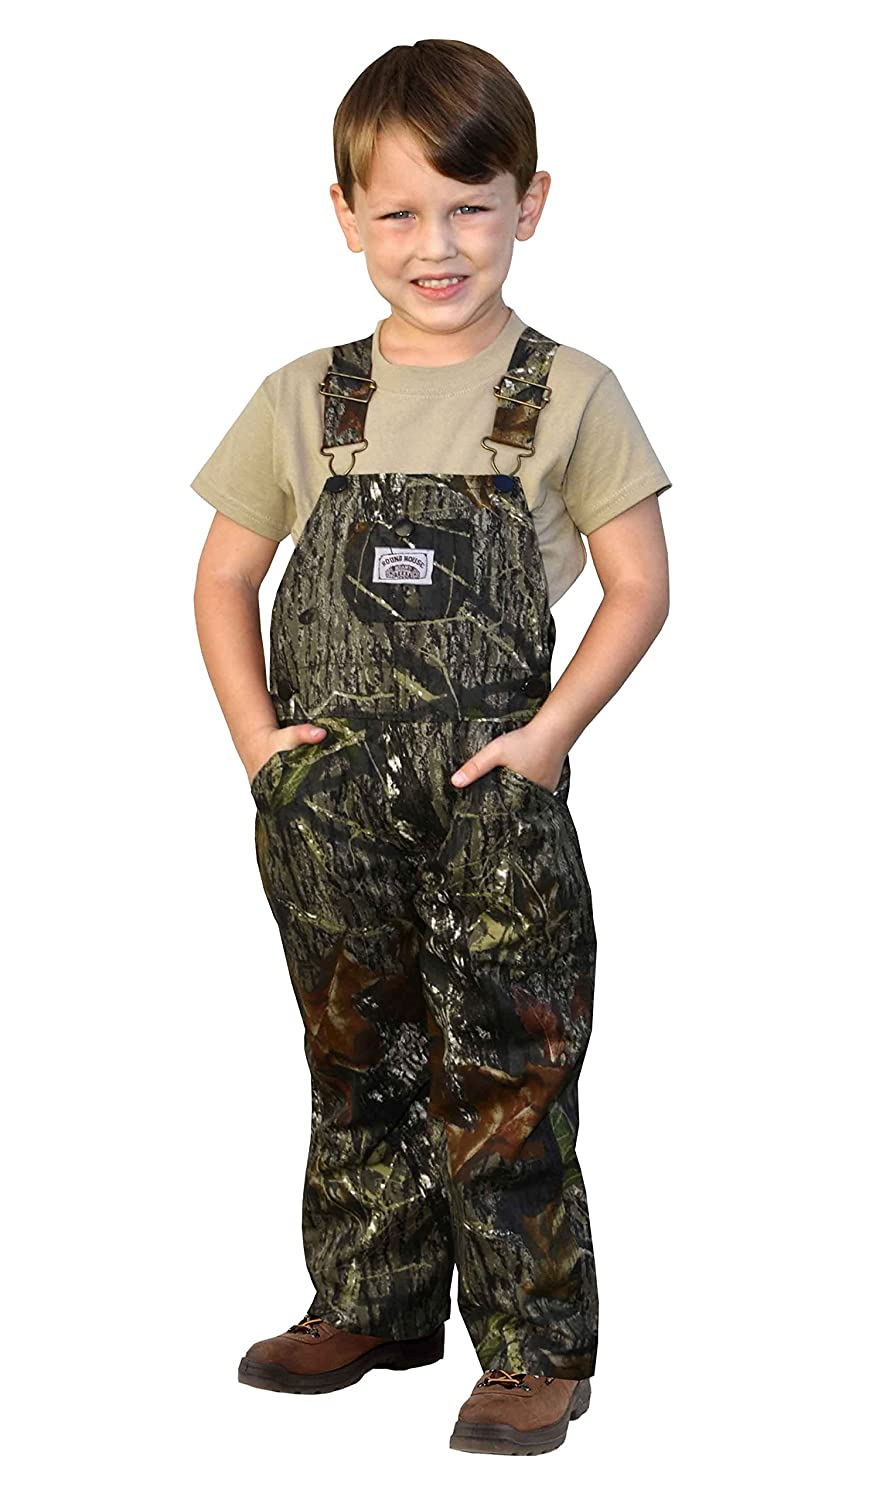 Round House Little Boys Mossy Oak Camo Bib Overalls - Made in USA little house in bakah 3 иерусалим